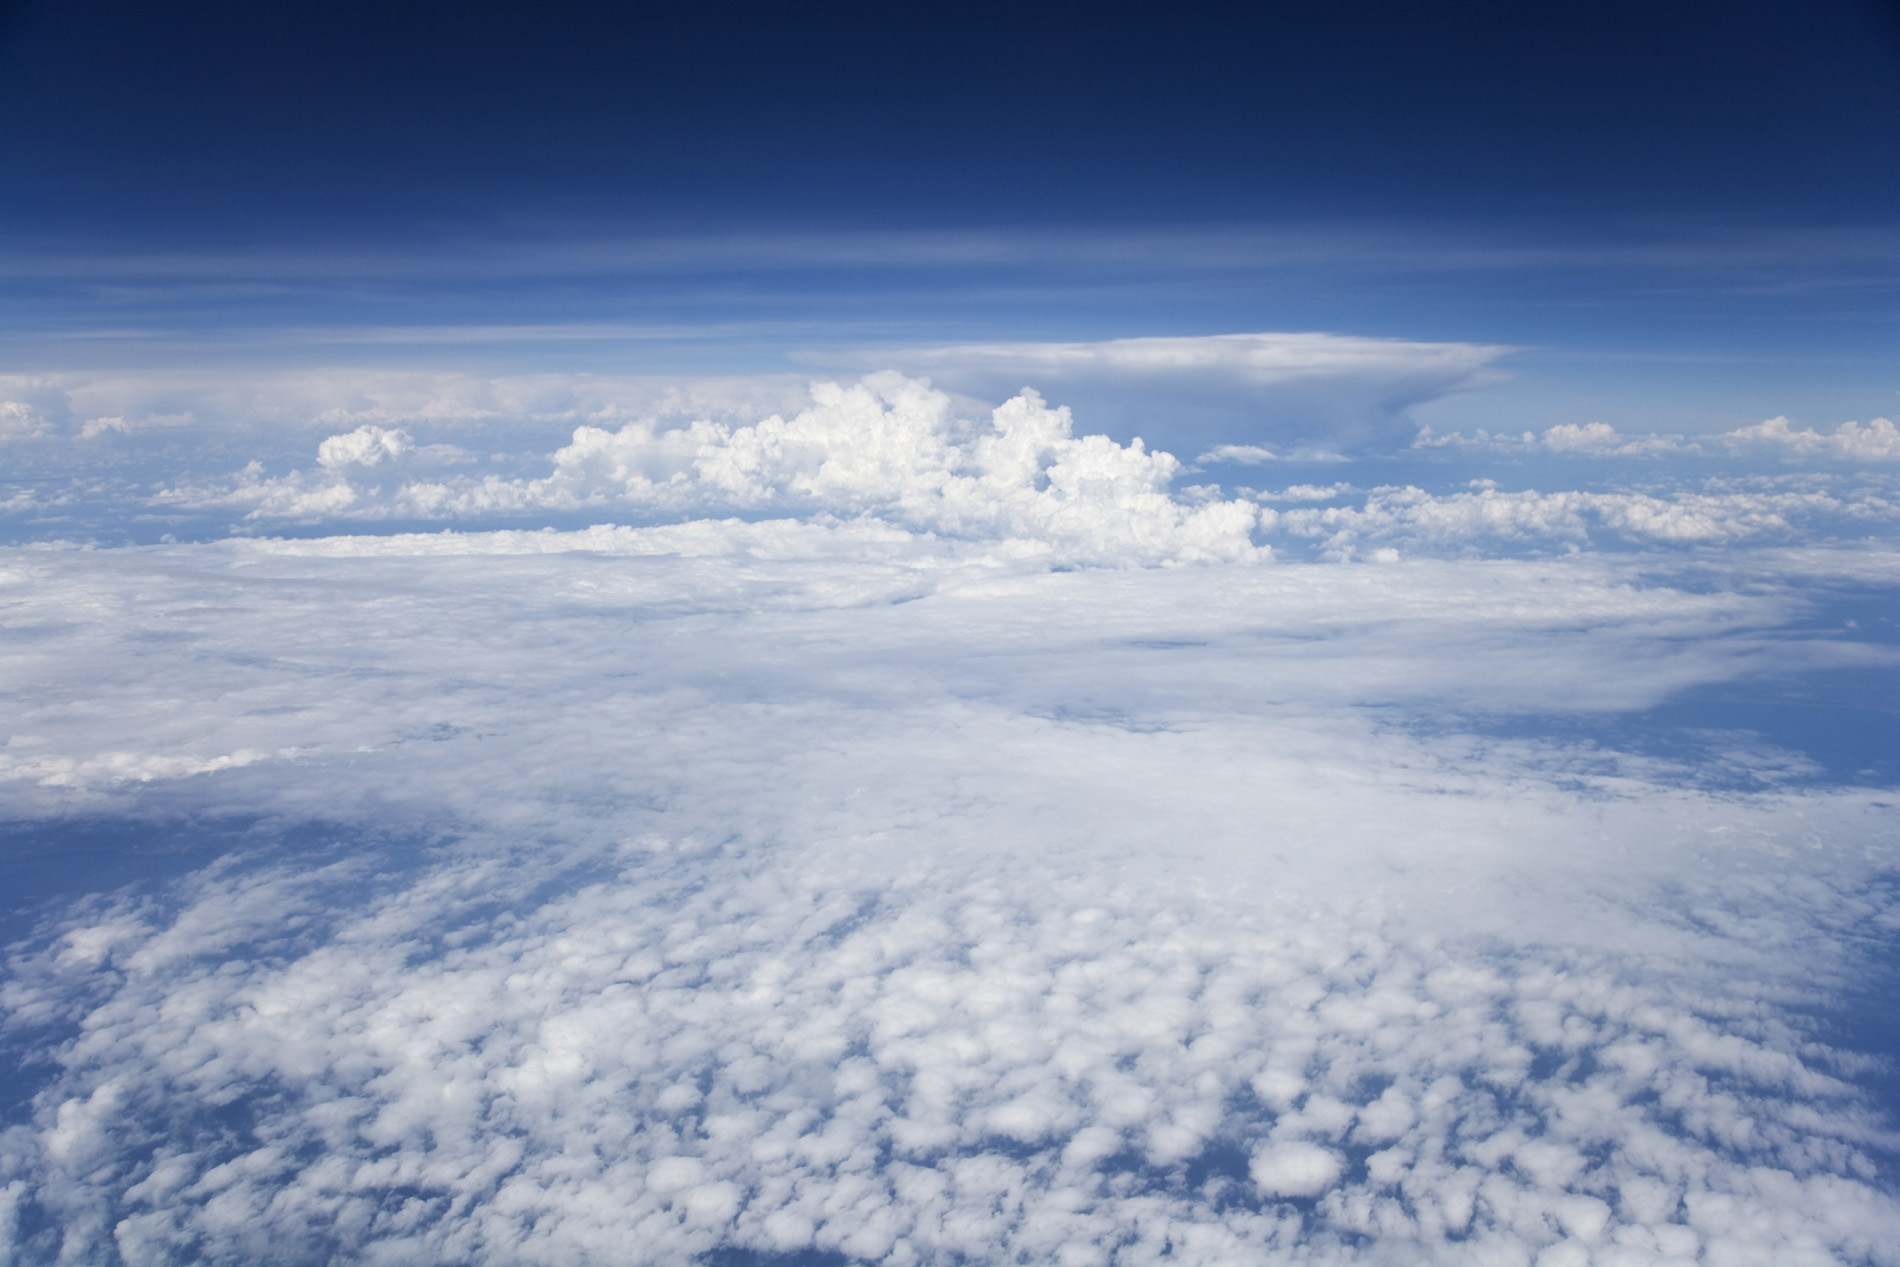 High up in the beautiful clouds 52742